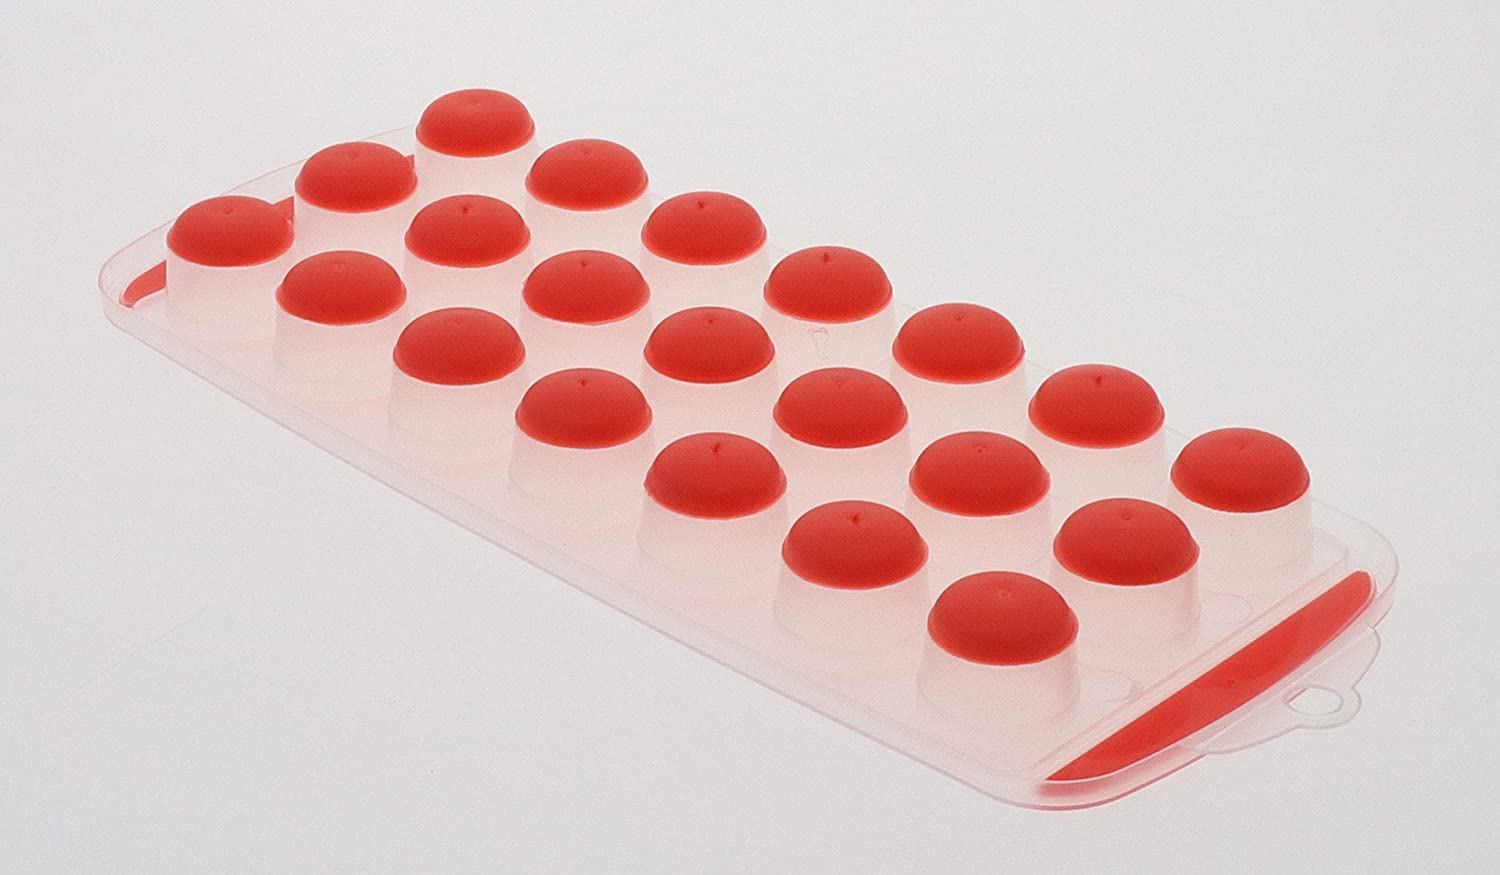 Pop Out Ice Cube Tray - BPA Free Dishwasher Safe Portable Novelty Flexible Silicone Ice Cube Maker - Just Press to Push Half Round Ice Cubes Into Drinks, Glasses. Color Orange by Perfect Life Ideas